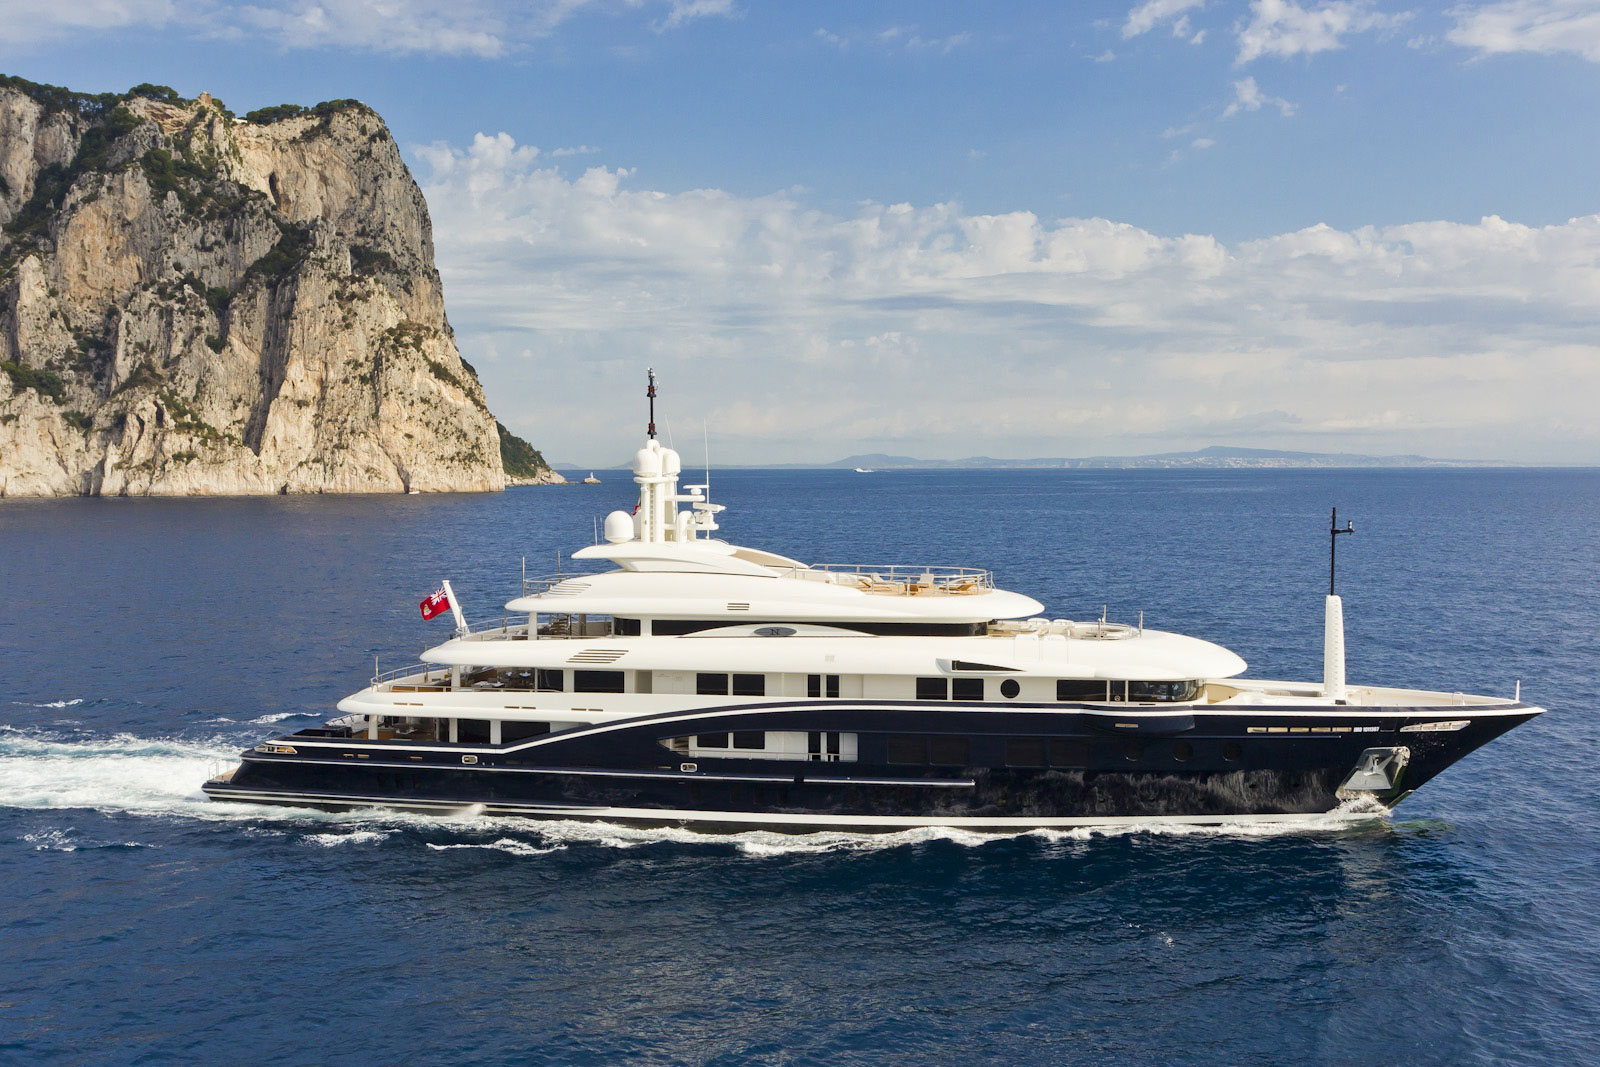 Numptia Superyacht For Sale At About 85 Million